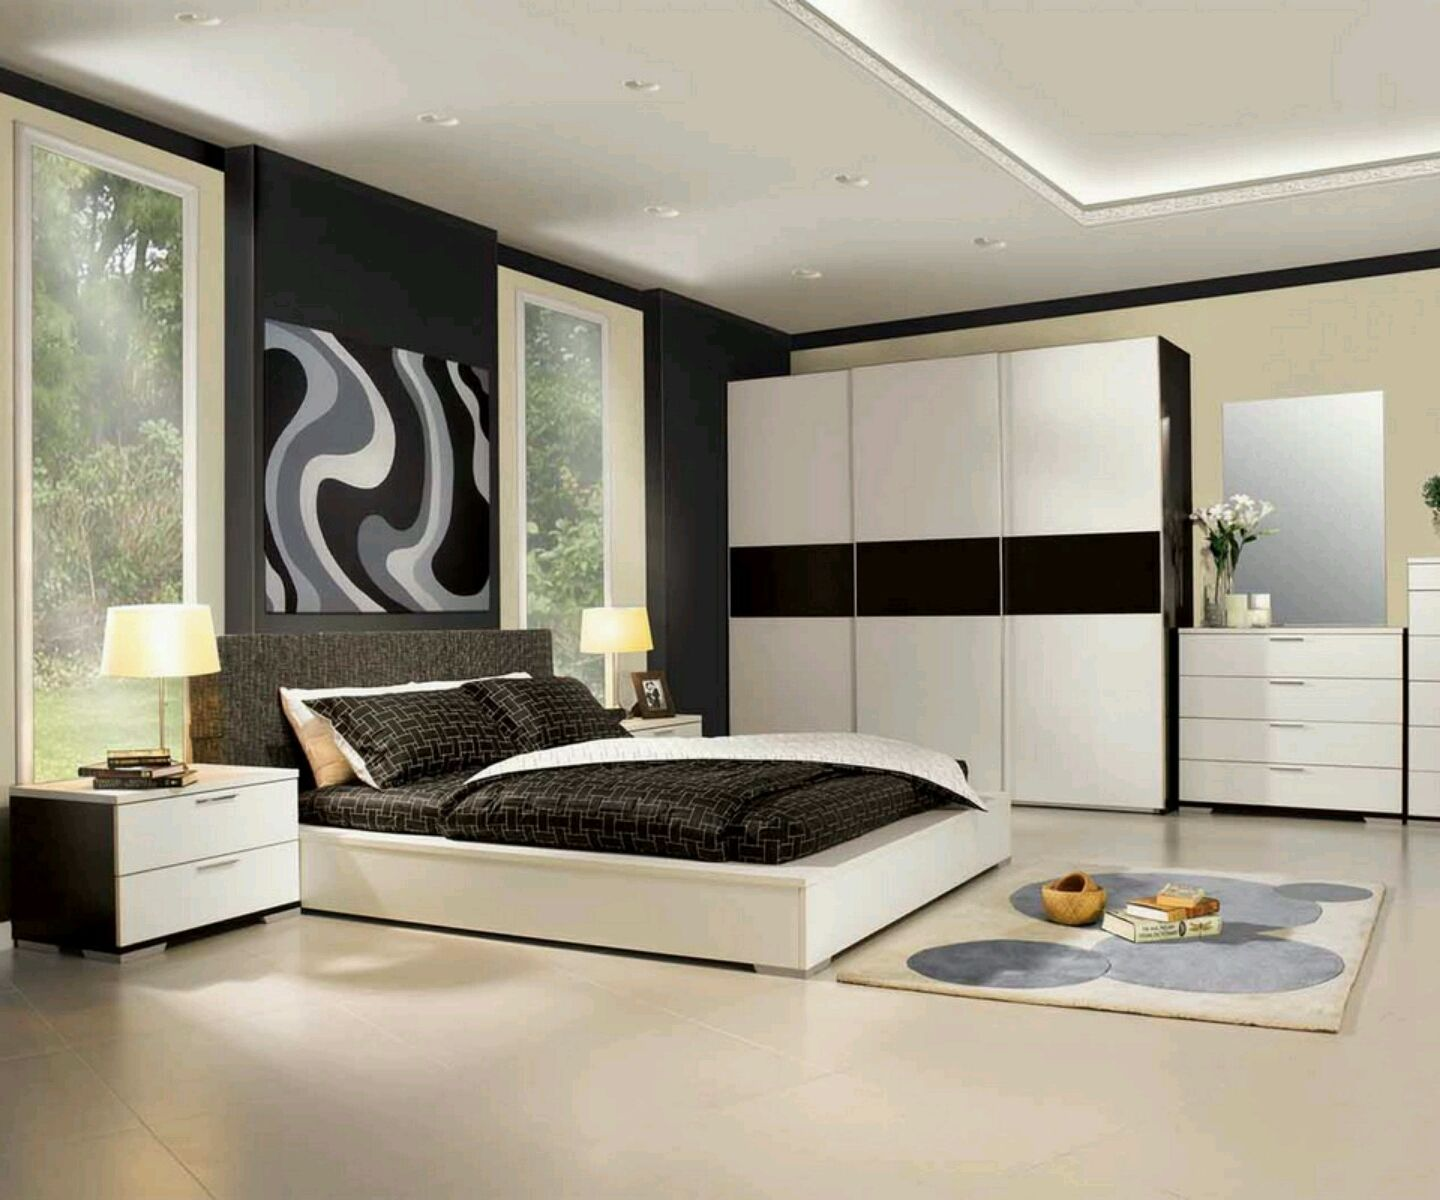 Ultra Modern Bedroom Interior Design Bedroom Colour Ideas 2014 Latest Bedroom Interior Design Trends Good Bedroom Colour Schemes: Pin By Demi McLean On Bedroom Furniture